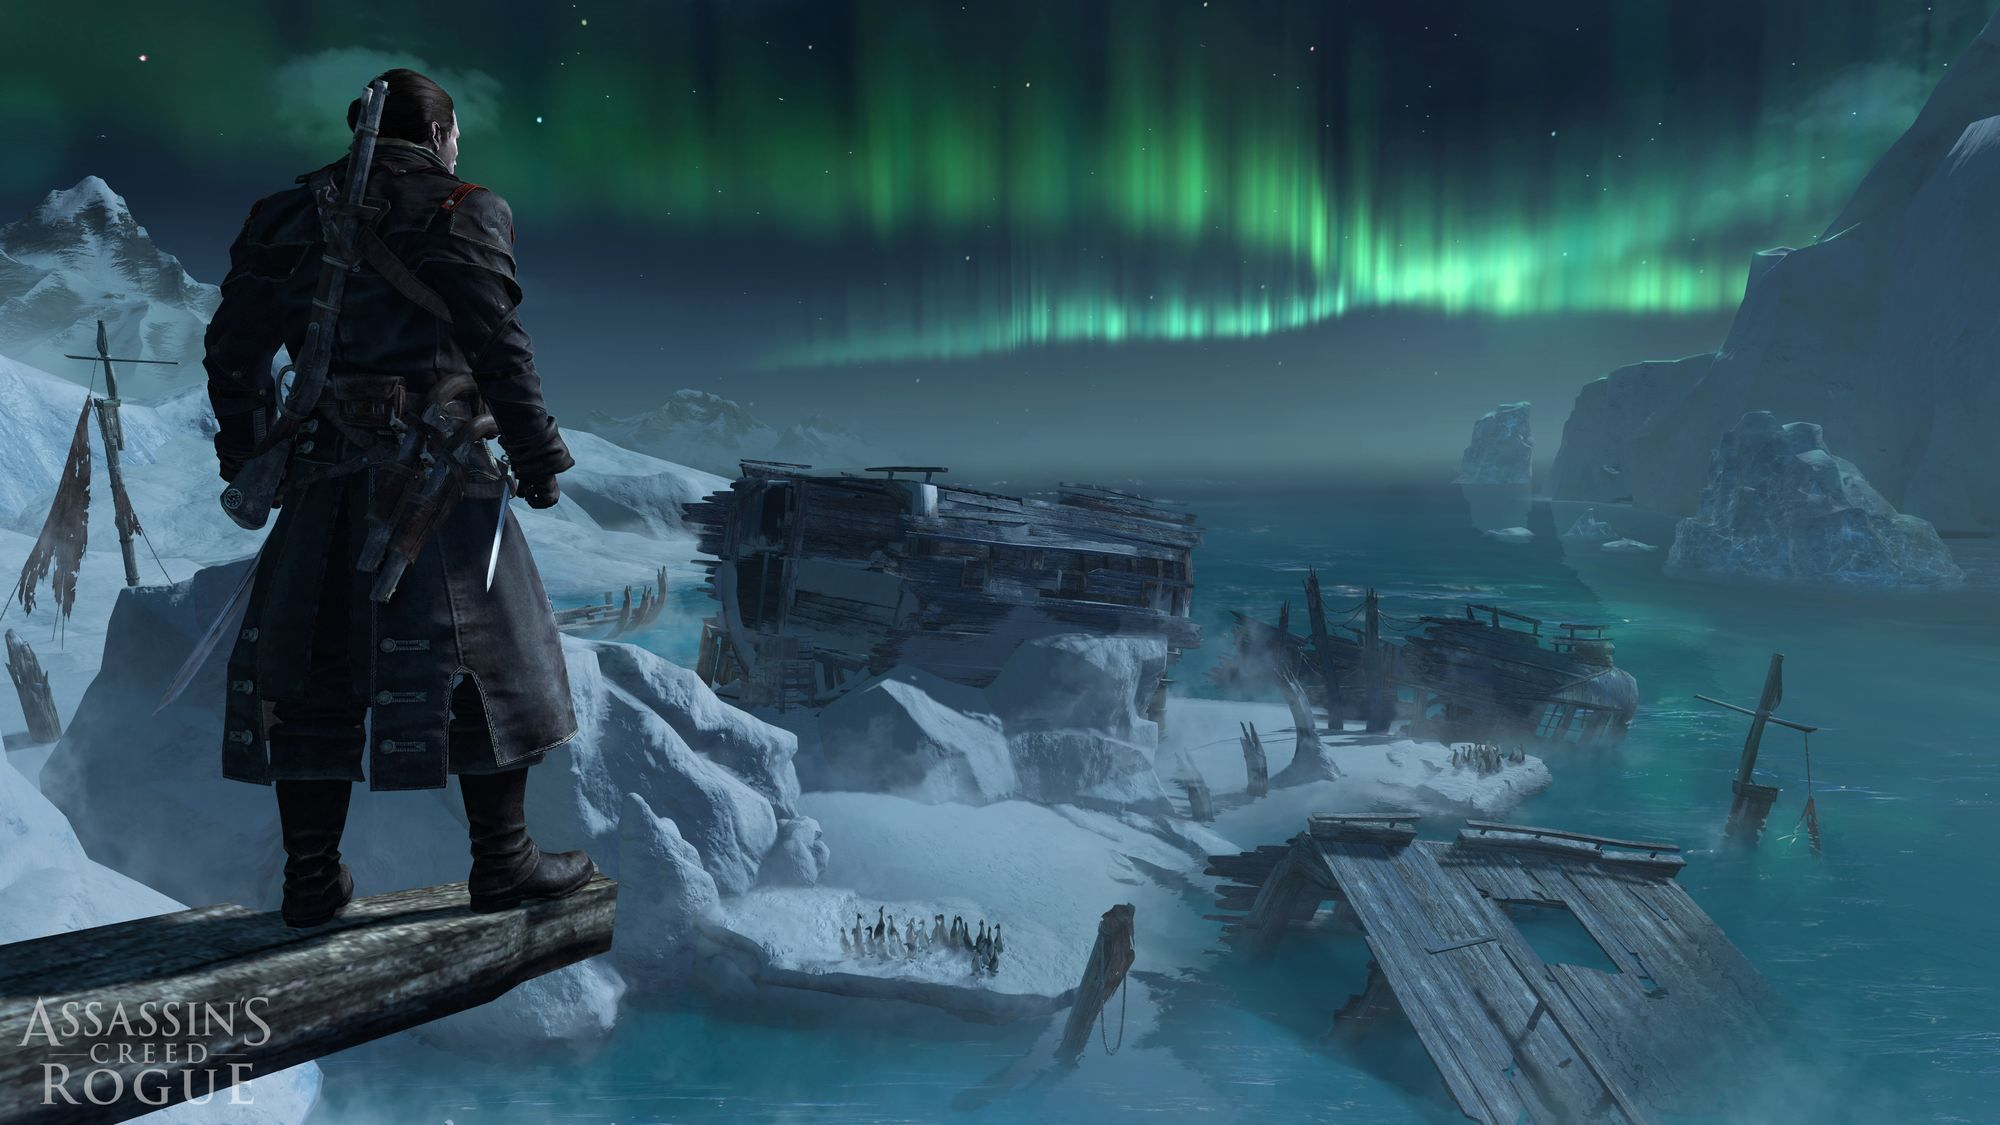 Assassin's Creed Rogue Remastered (Xbox One) - 3